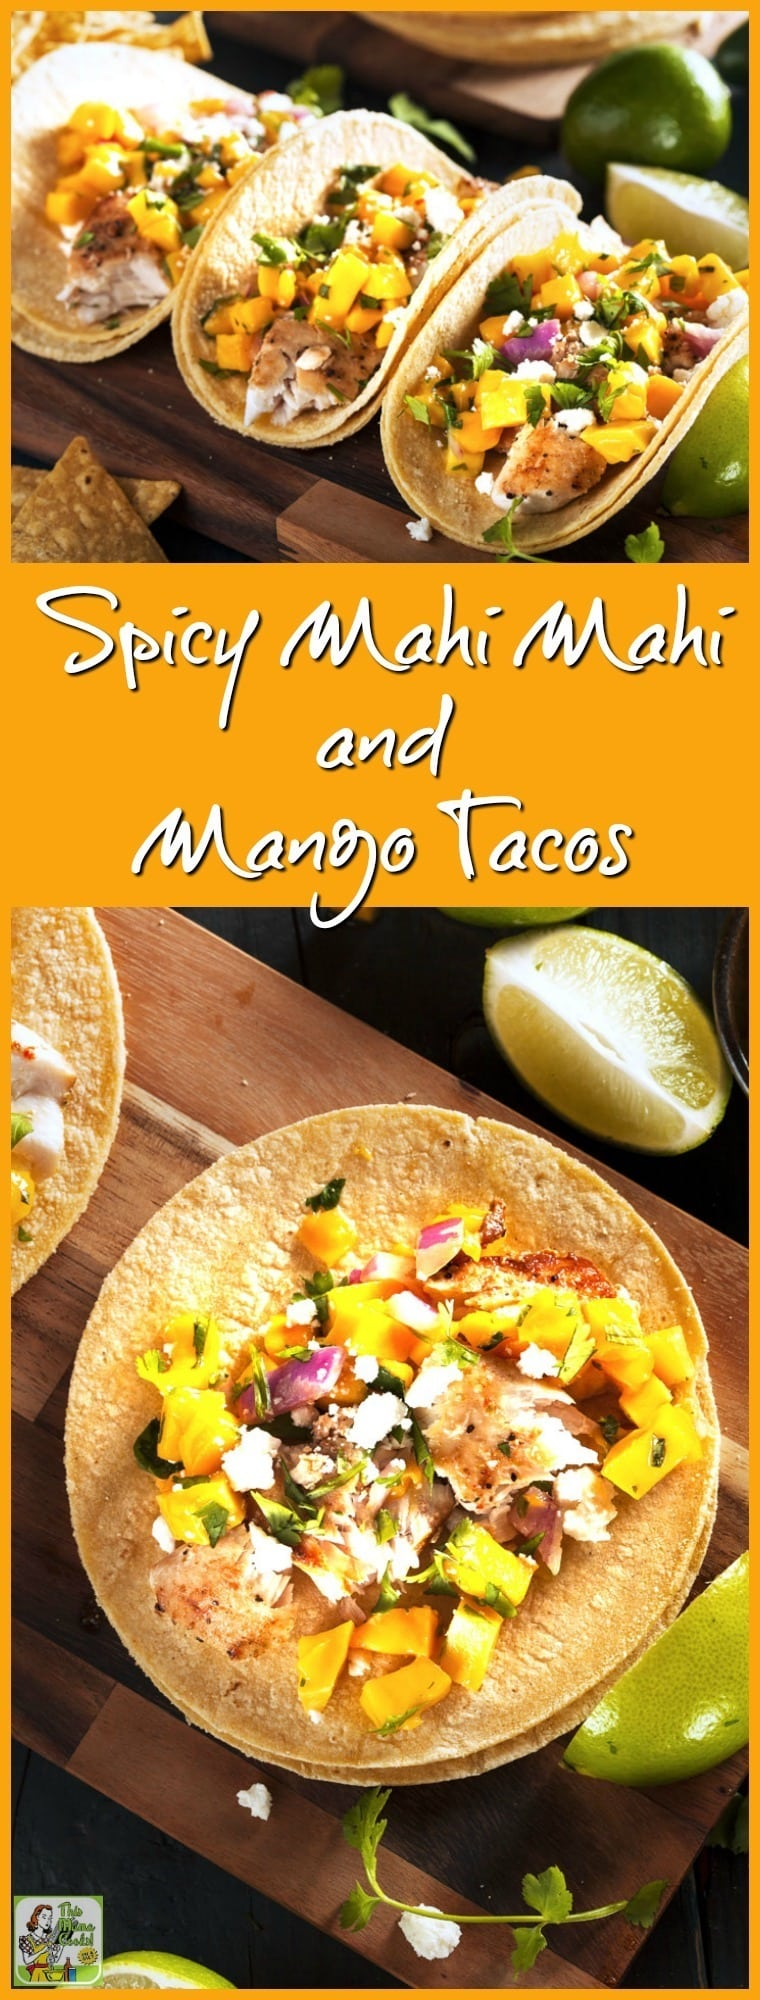 This Spicy Mahi Mahi and Mango Fish Taco recipe from Jillian Michaels ...